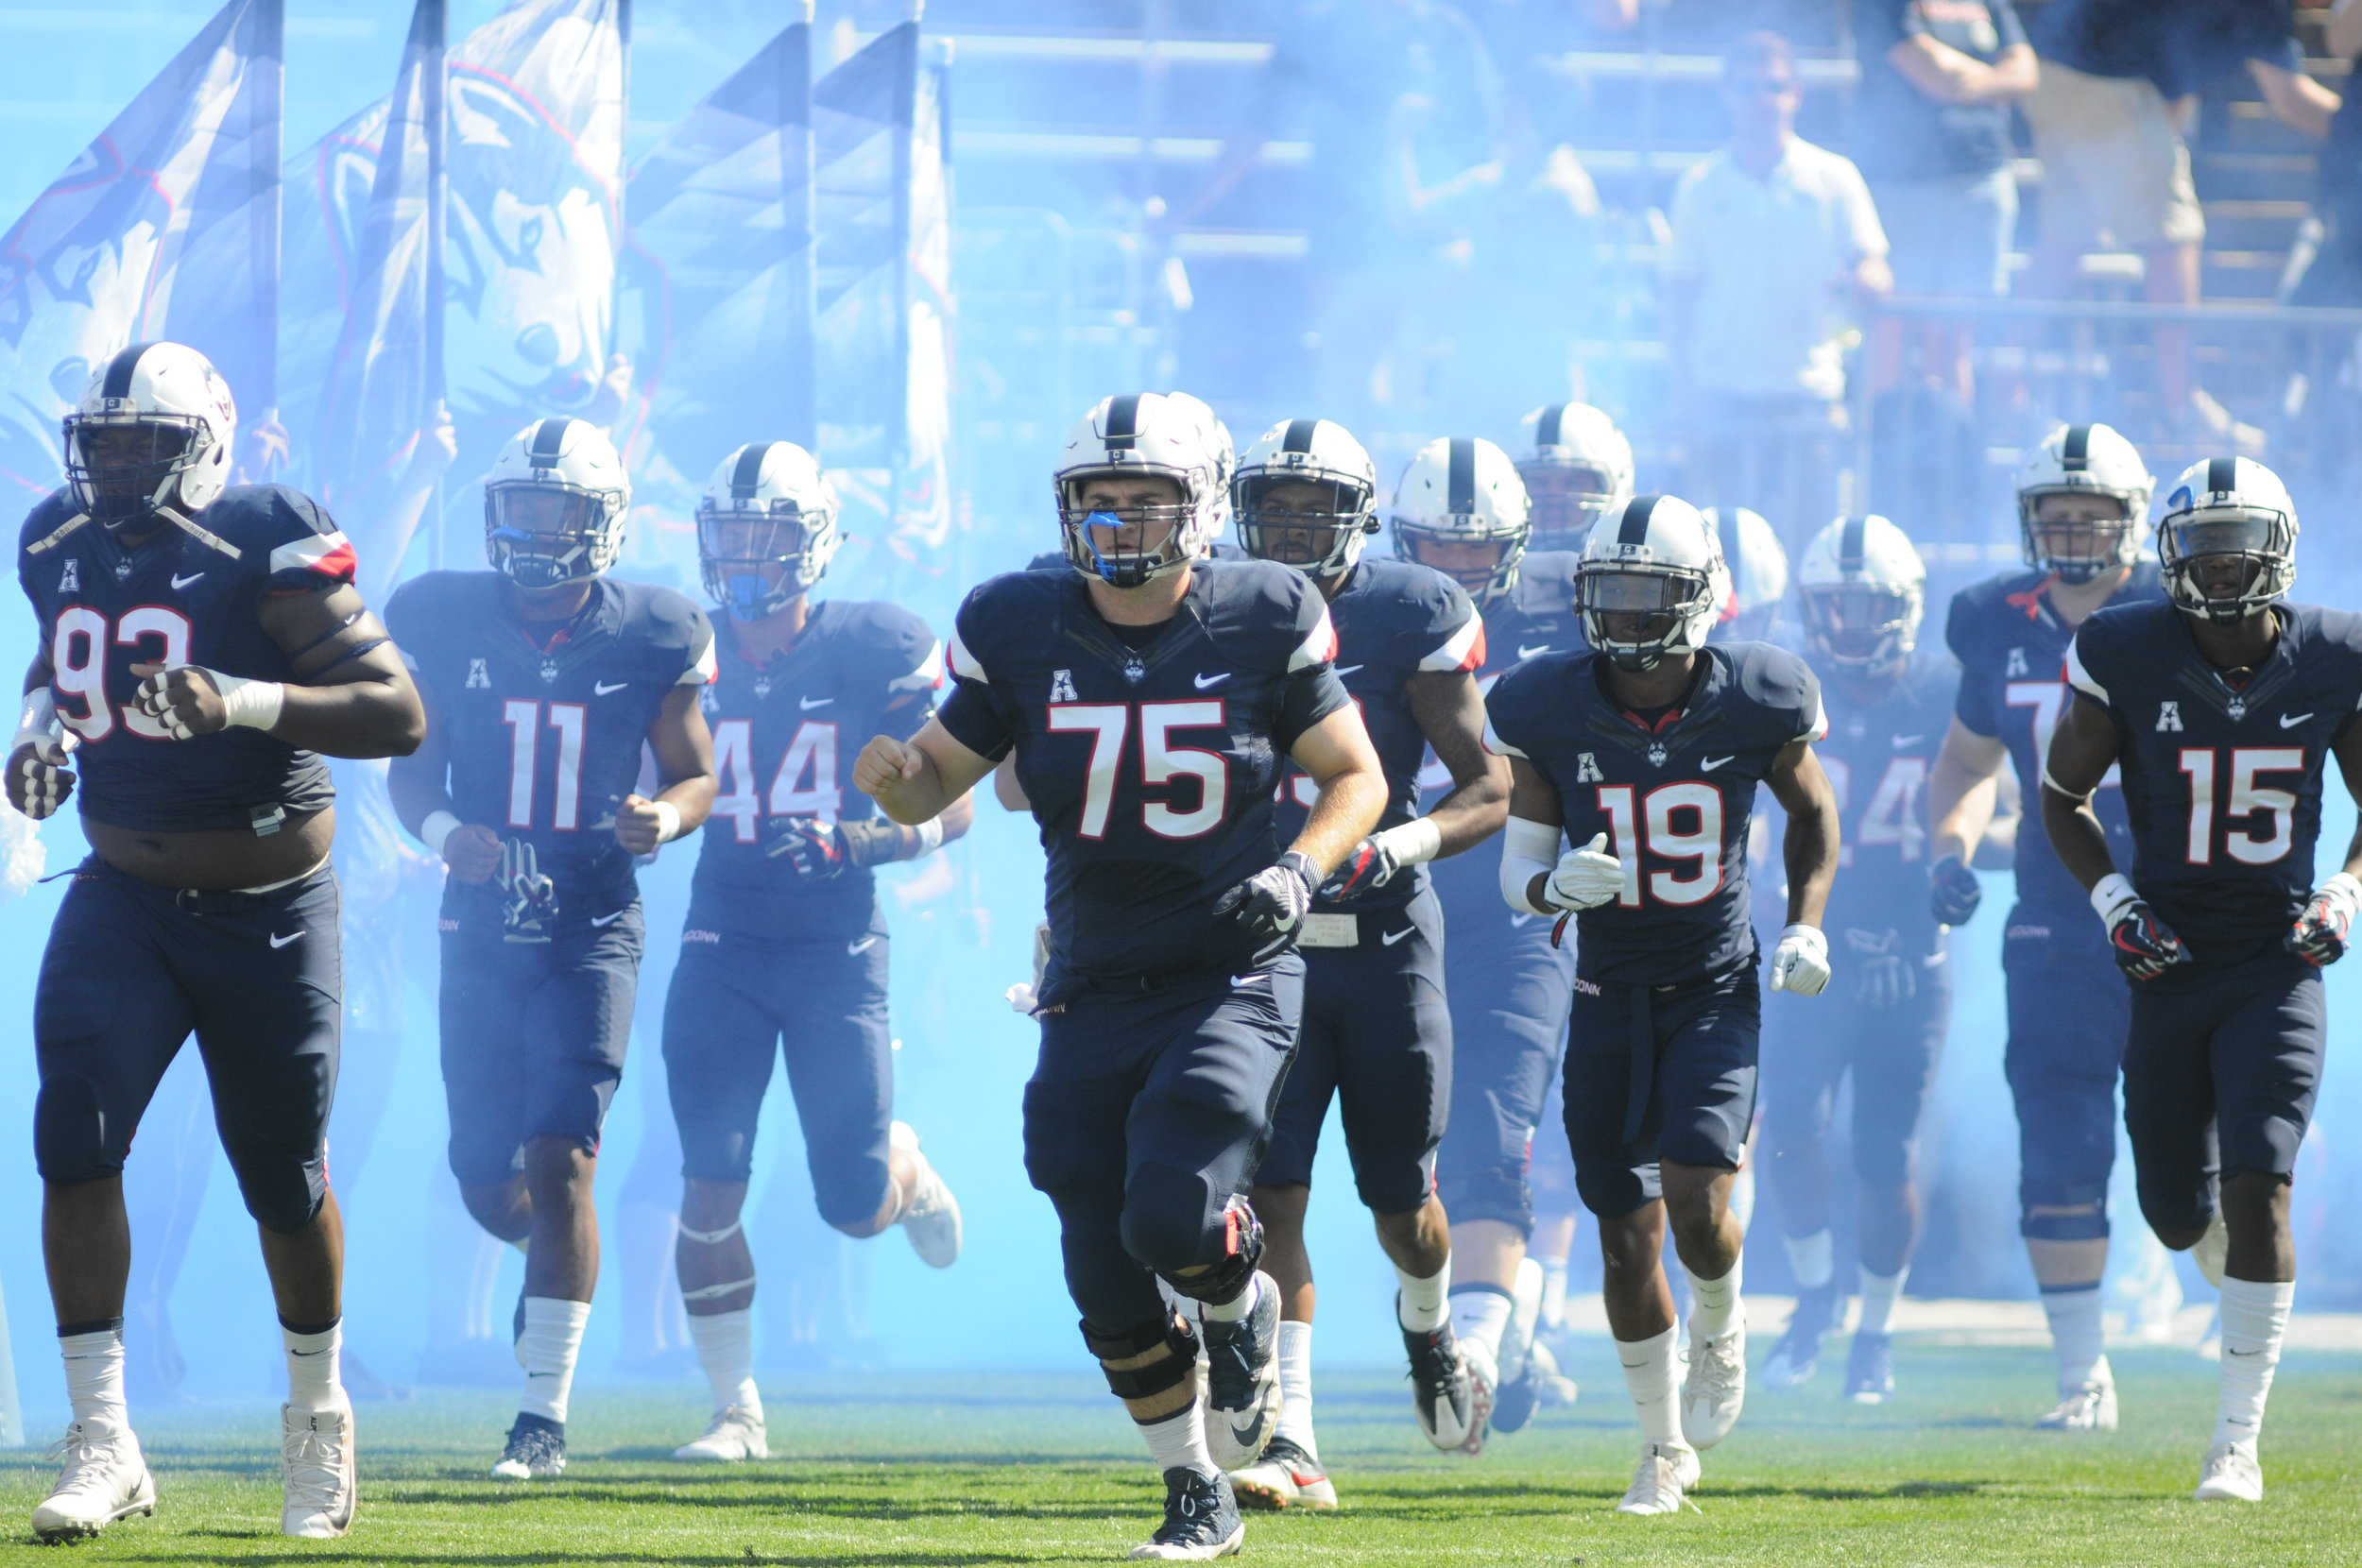 UConn football will be playing SMU this Sunday in Dallas, Texas. (Jon Sammis/The Daily Campus)